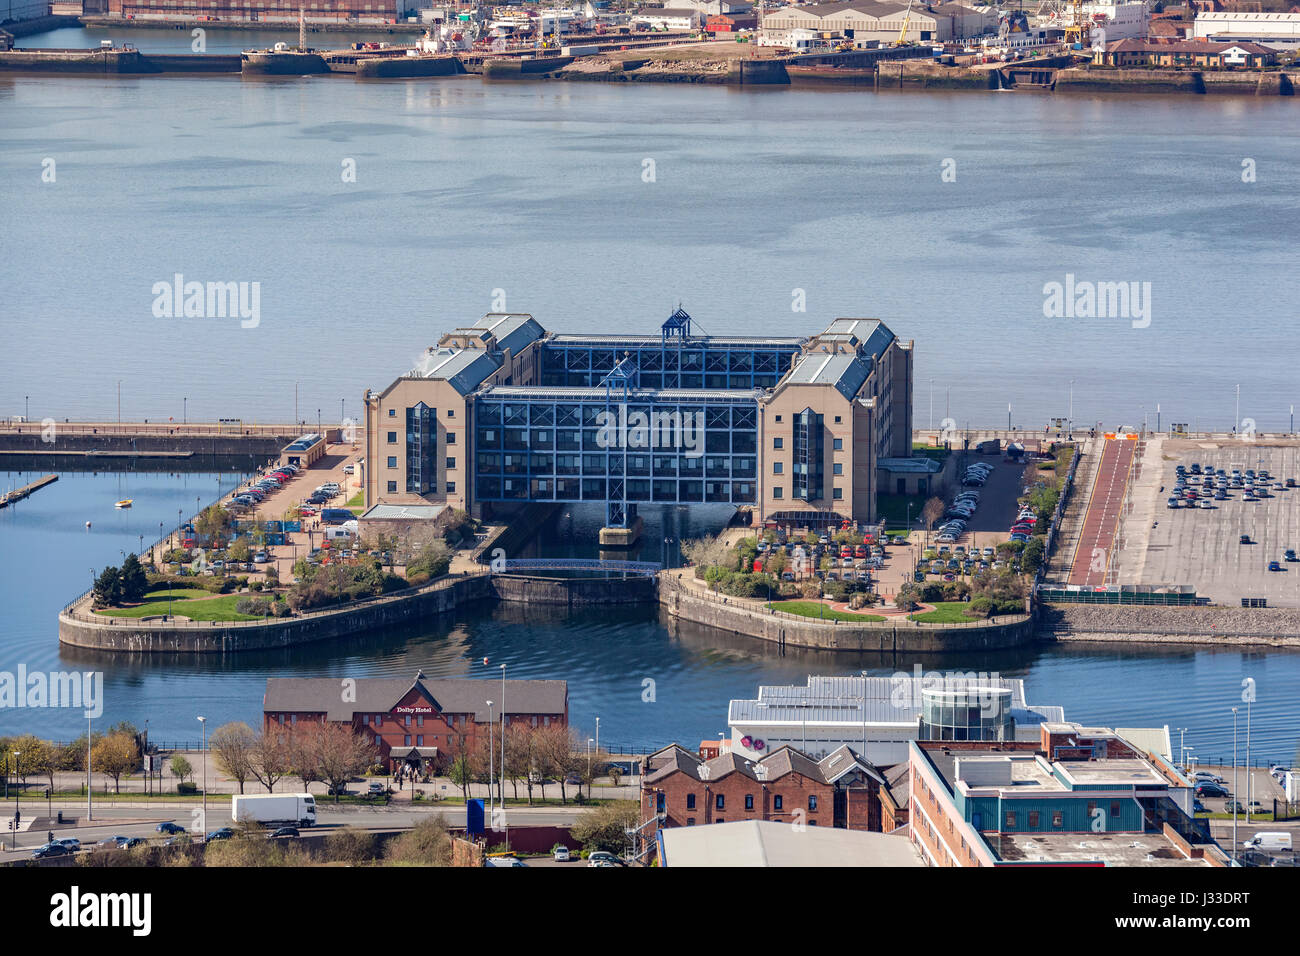 The former HMRC building on Queens Dock. Now converted to apartments. - Stock Image